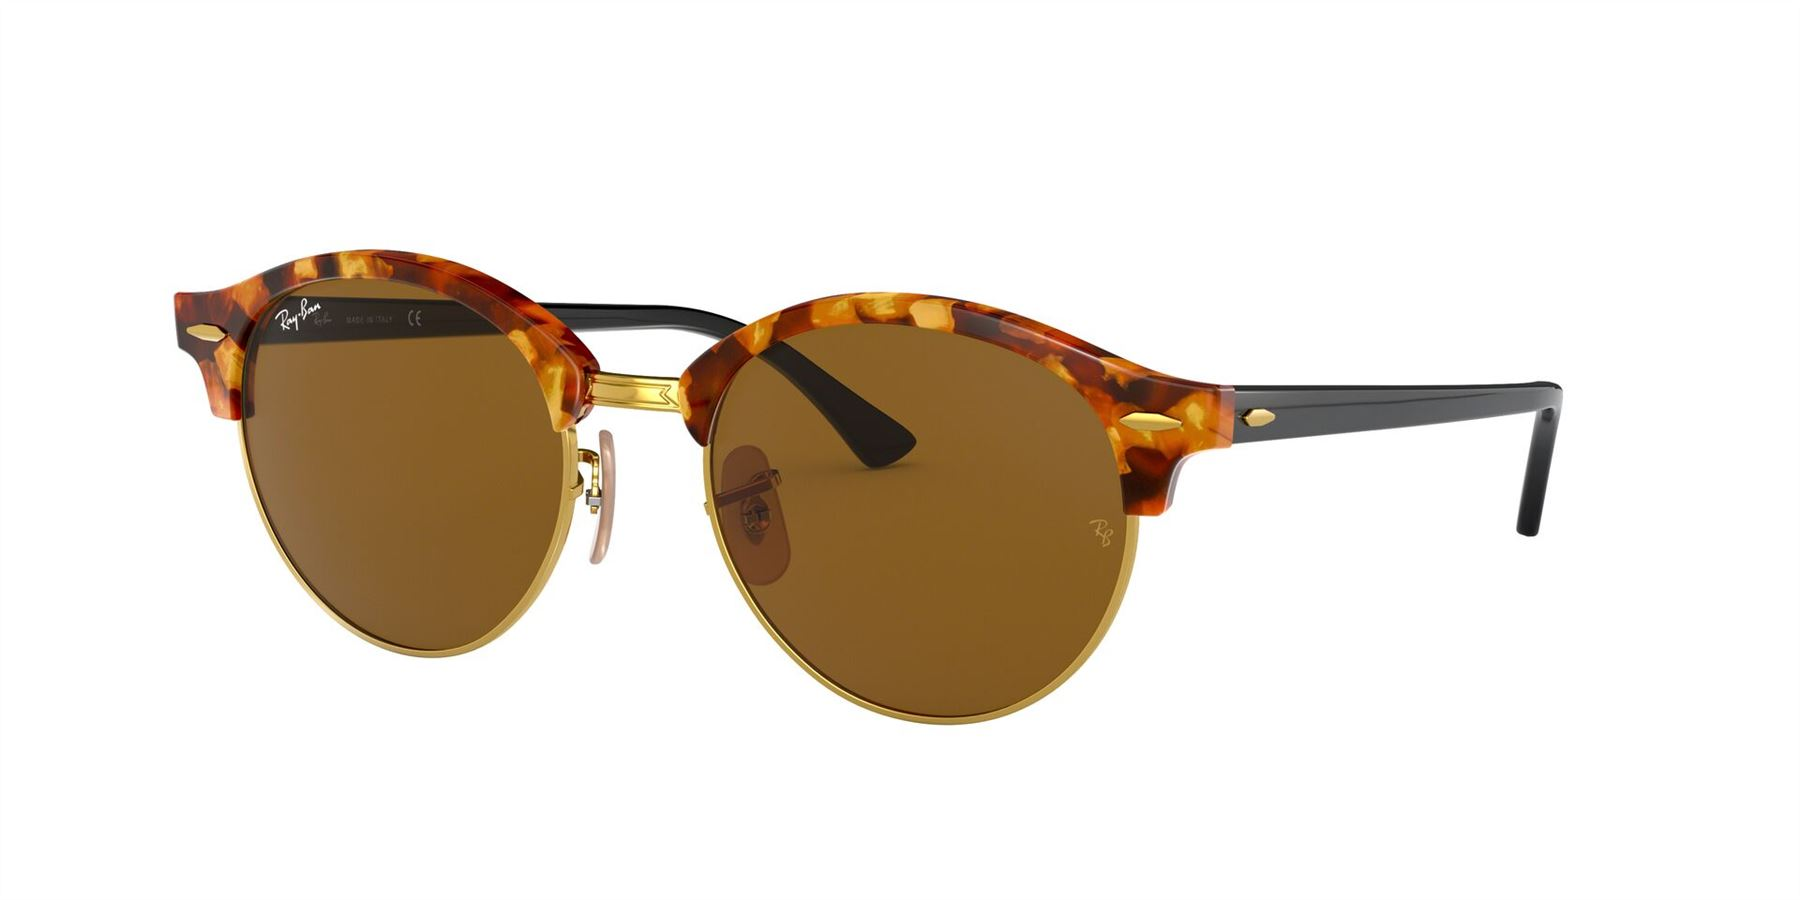 Ray-Ban Sunglasses Clubround RB4246 1160 Spotted Brown Havana/Brown - Size - 51